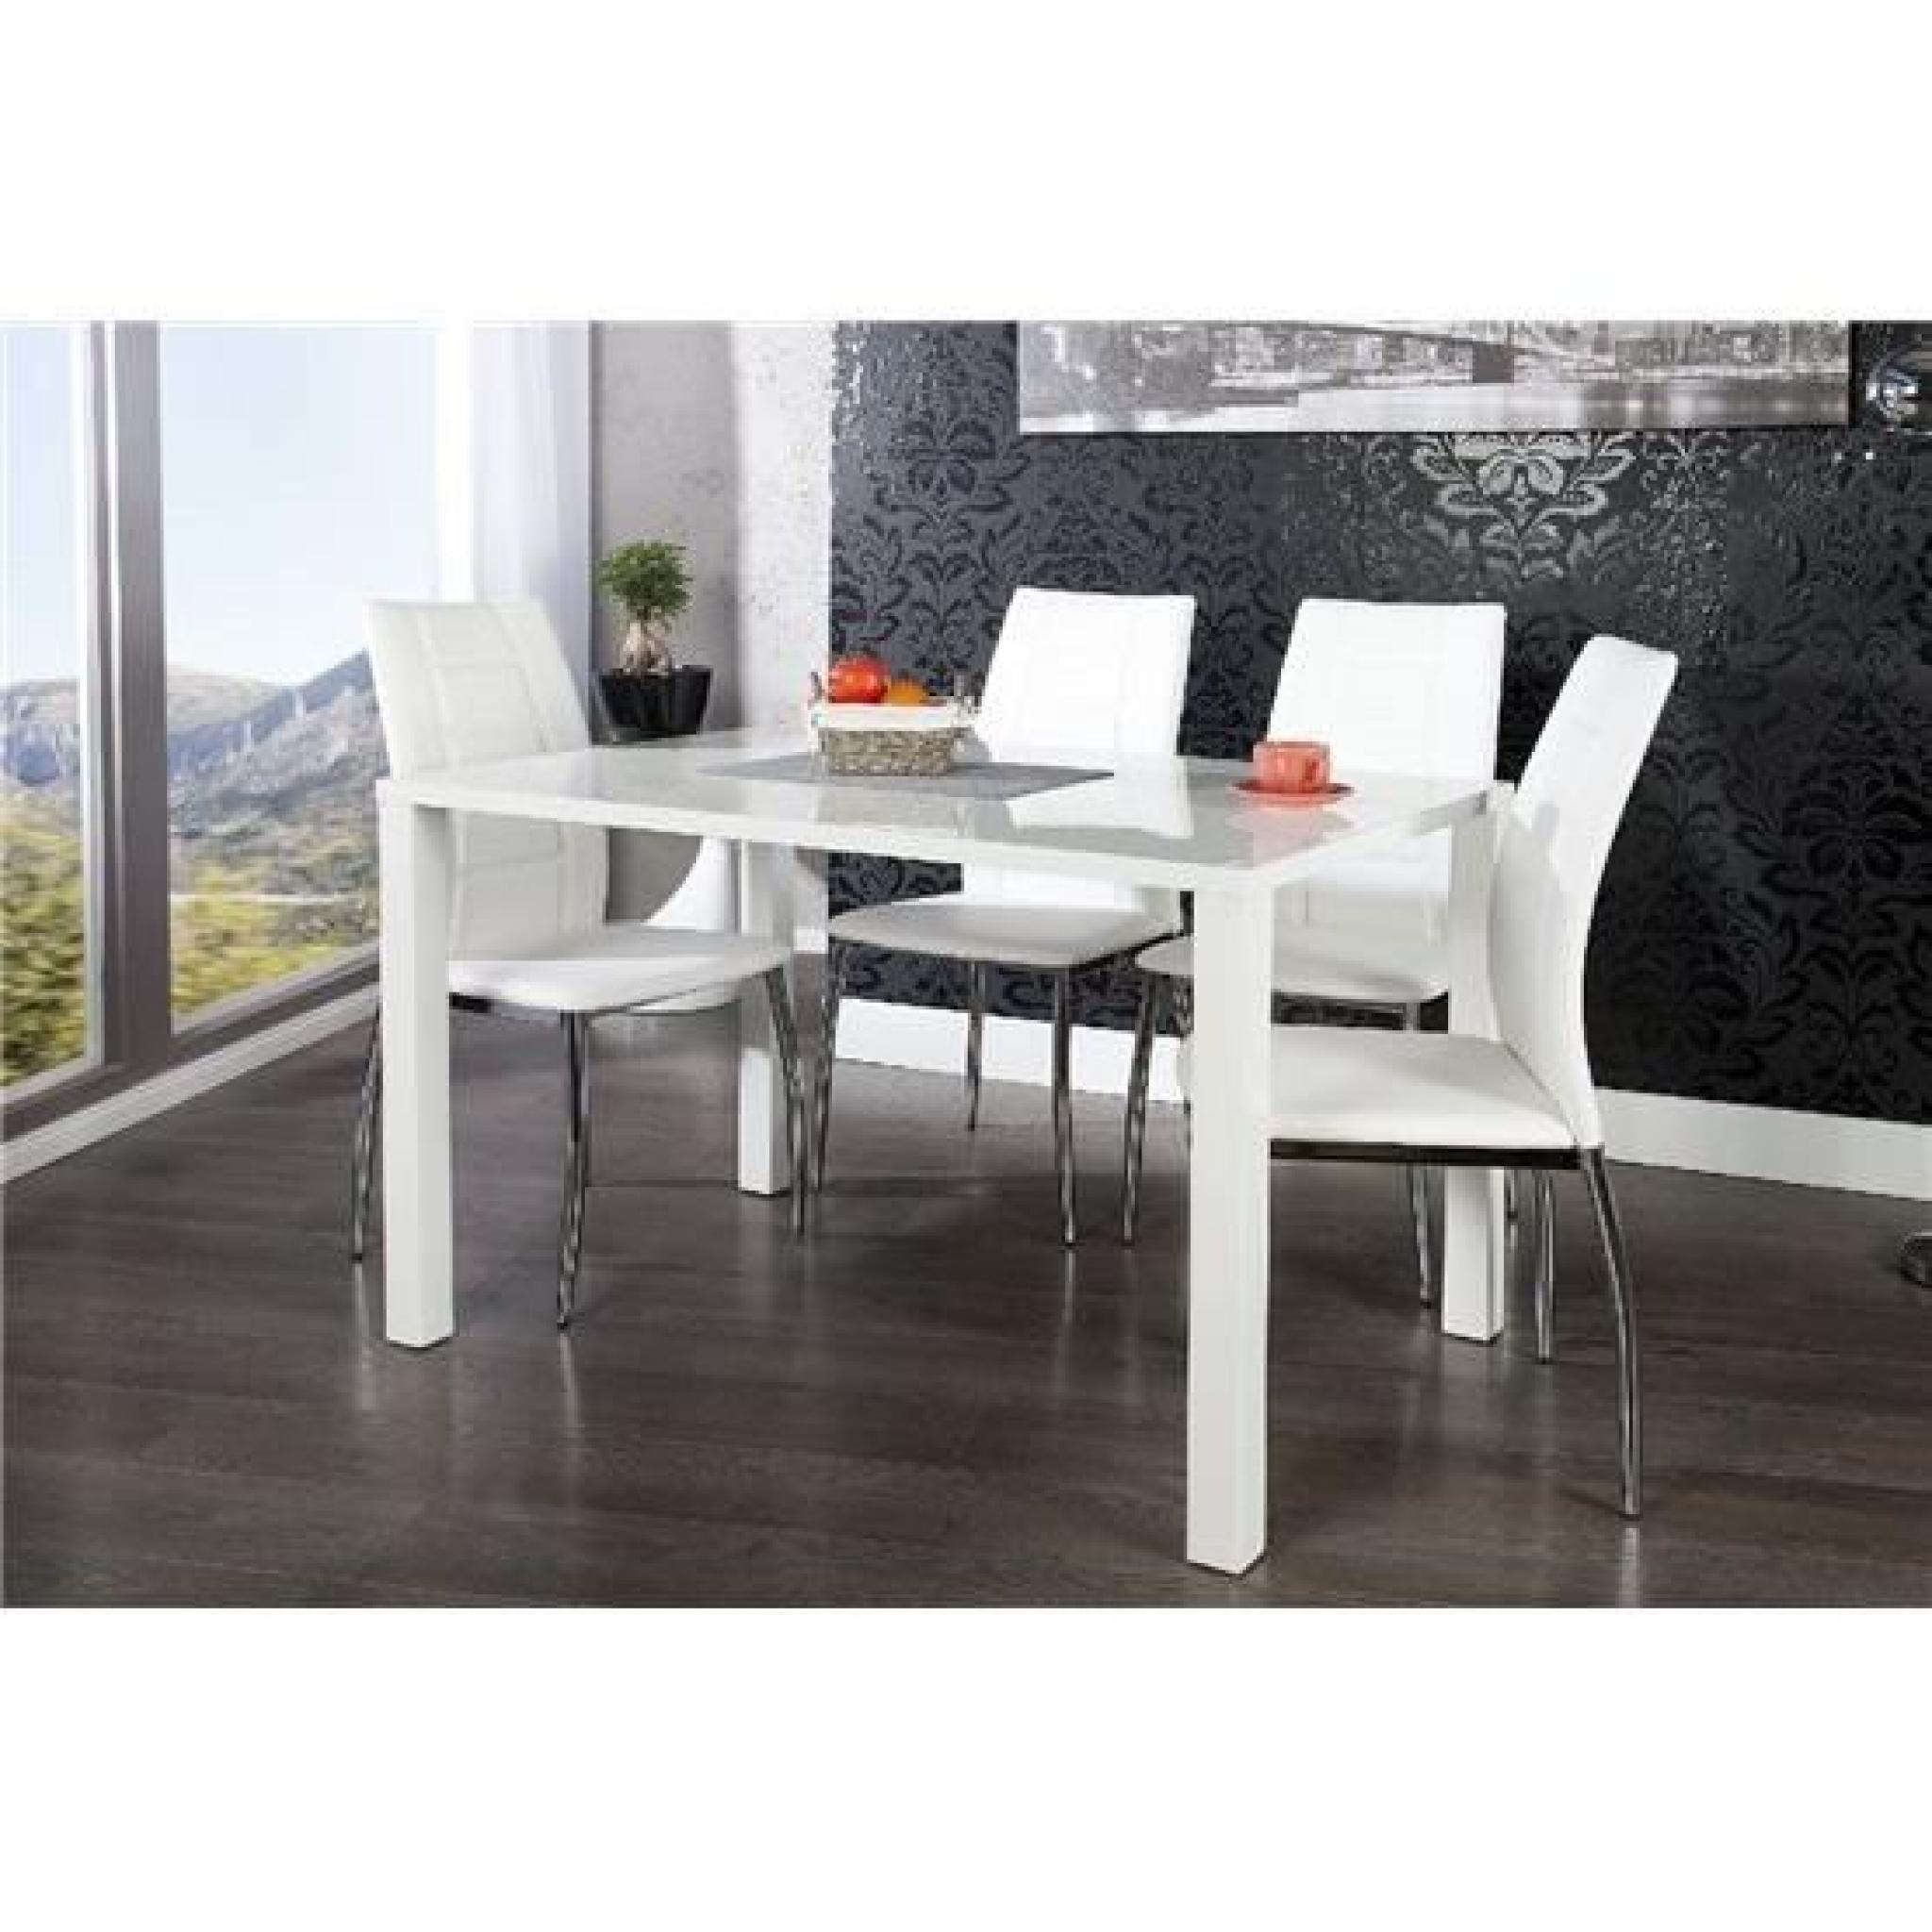 Table manger design lasya blanc 120x80 achat vente for Table a manger design